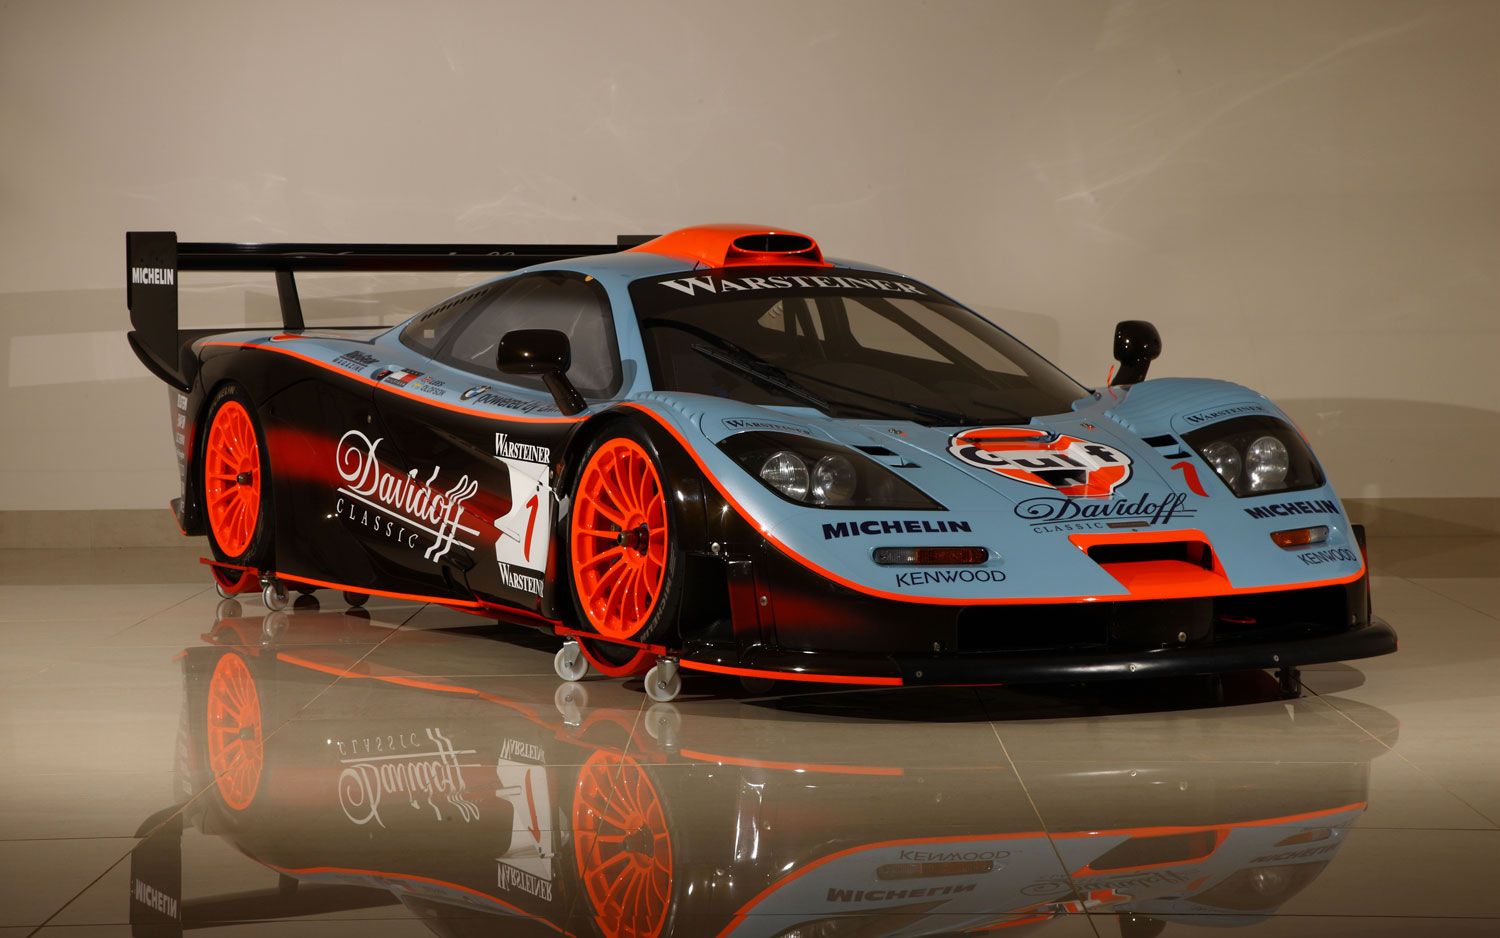 Ex GTC Gulf Team Davidoff 1997 McLaren F1 GTR Longtail FIA GT Endurance Racing Coupe Front Right 11